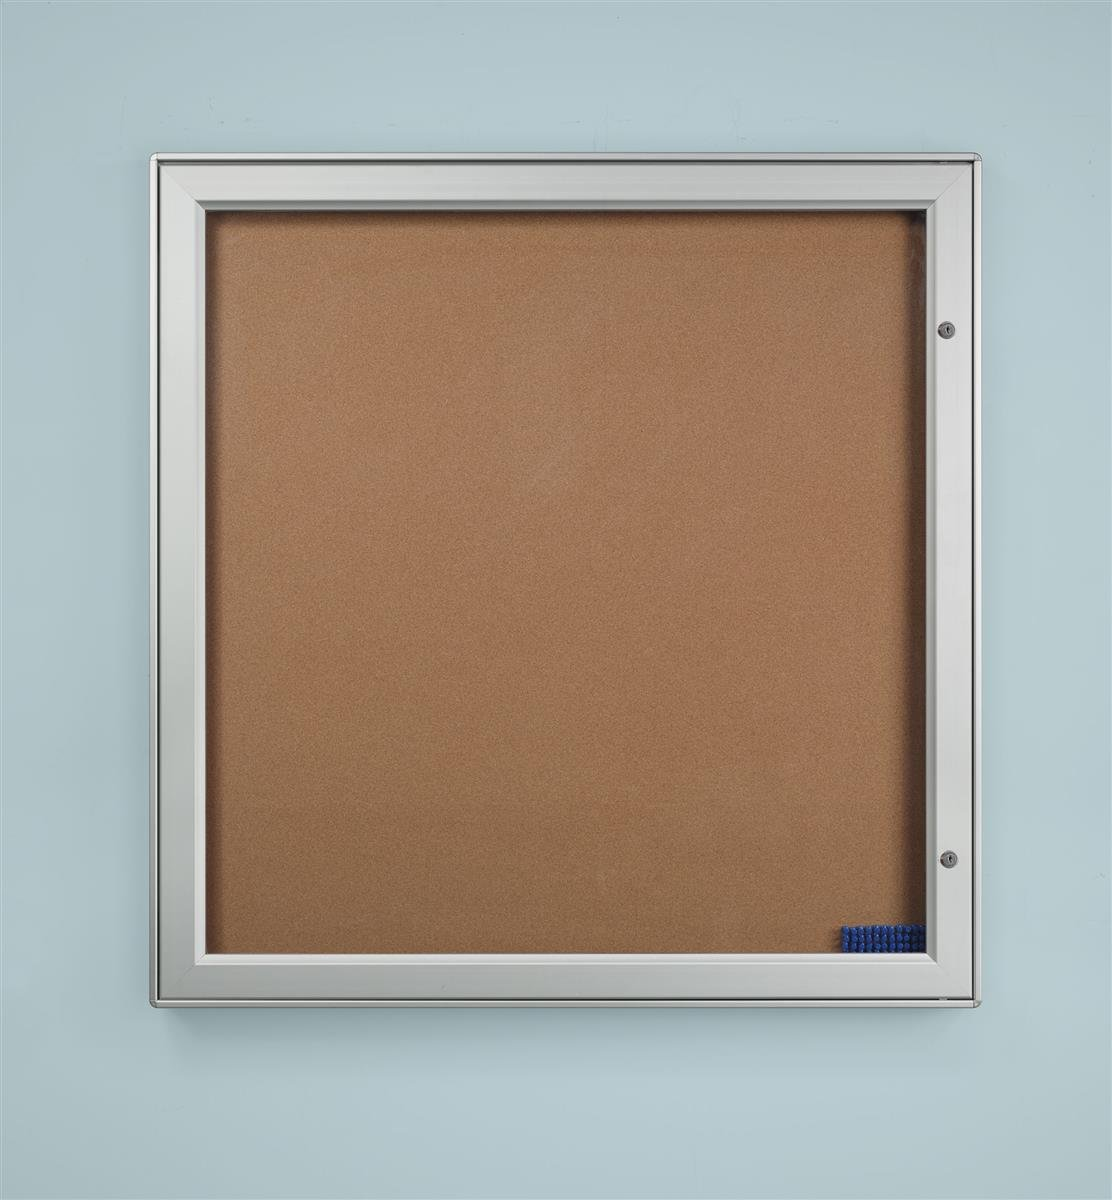 Displays2go 41 x 41.25 Inches Enclosed Bulletin Board with Swing-Open Locking Door - Silver Aluminum Frame (ODNBCB12A4)